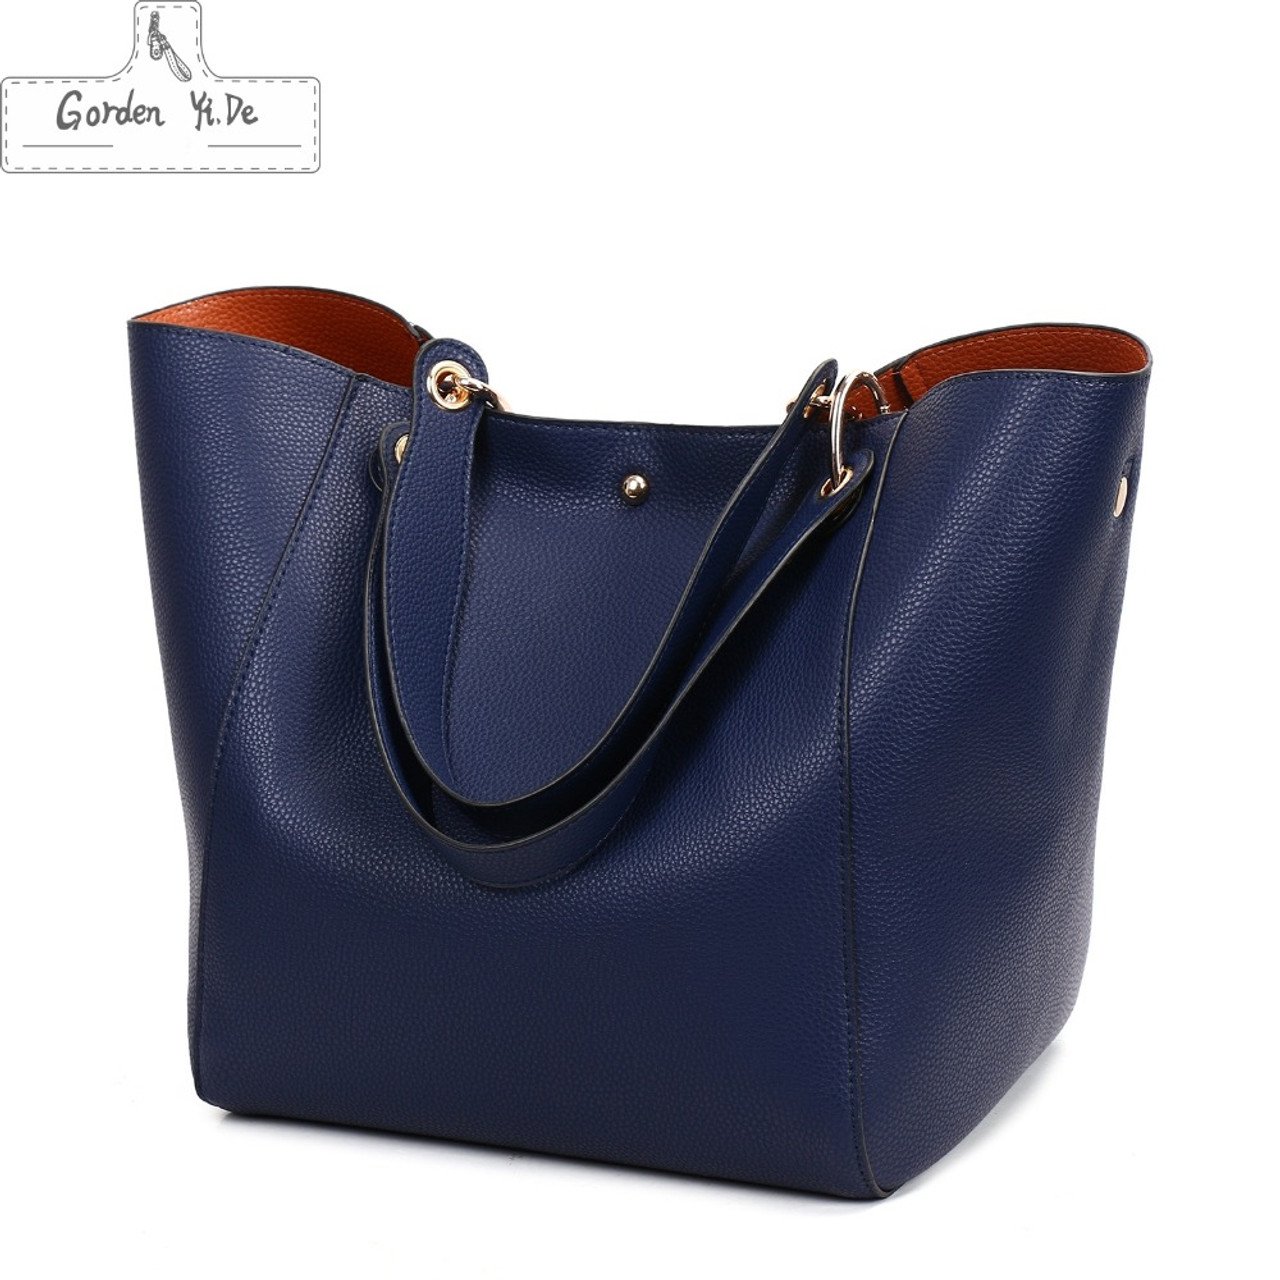 ... Genuine leather Women handbags 2019 New Design Women Bucket Bags  Vintage Large Female Shoulder Bags bolsa ... 67562386f8770